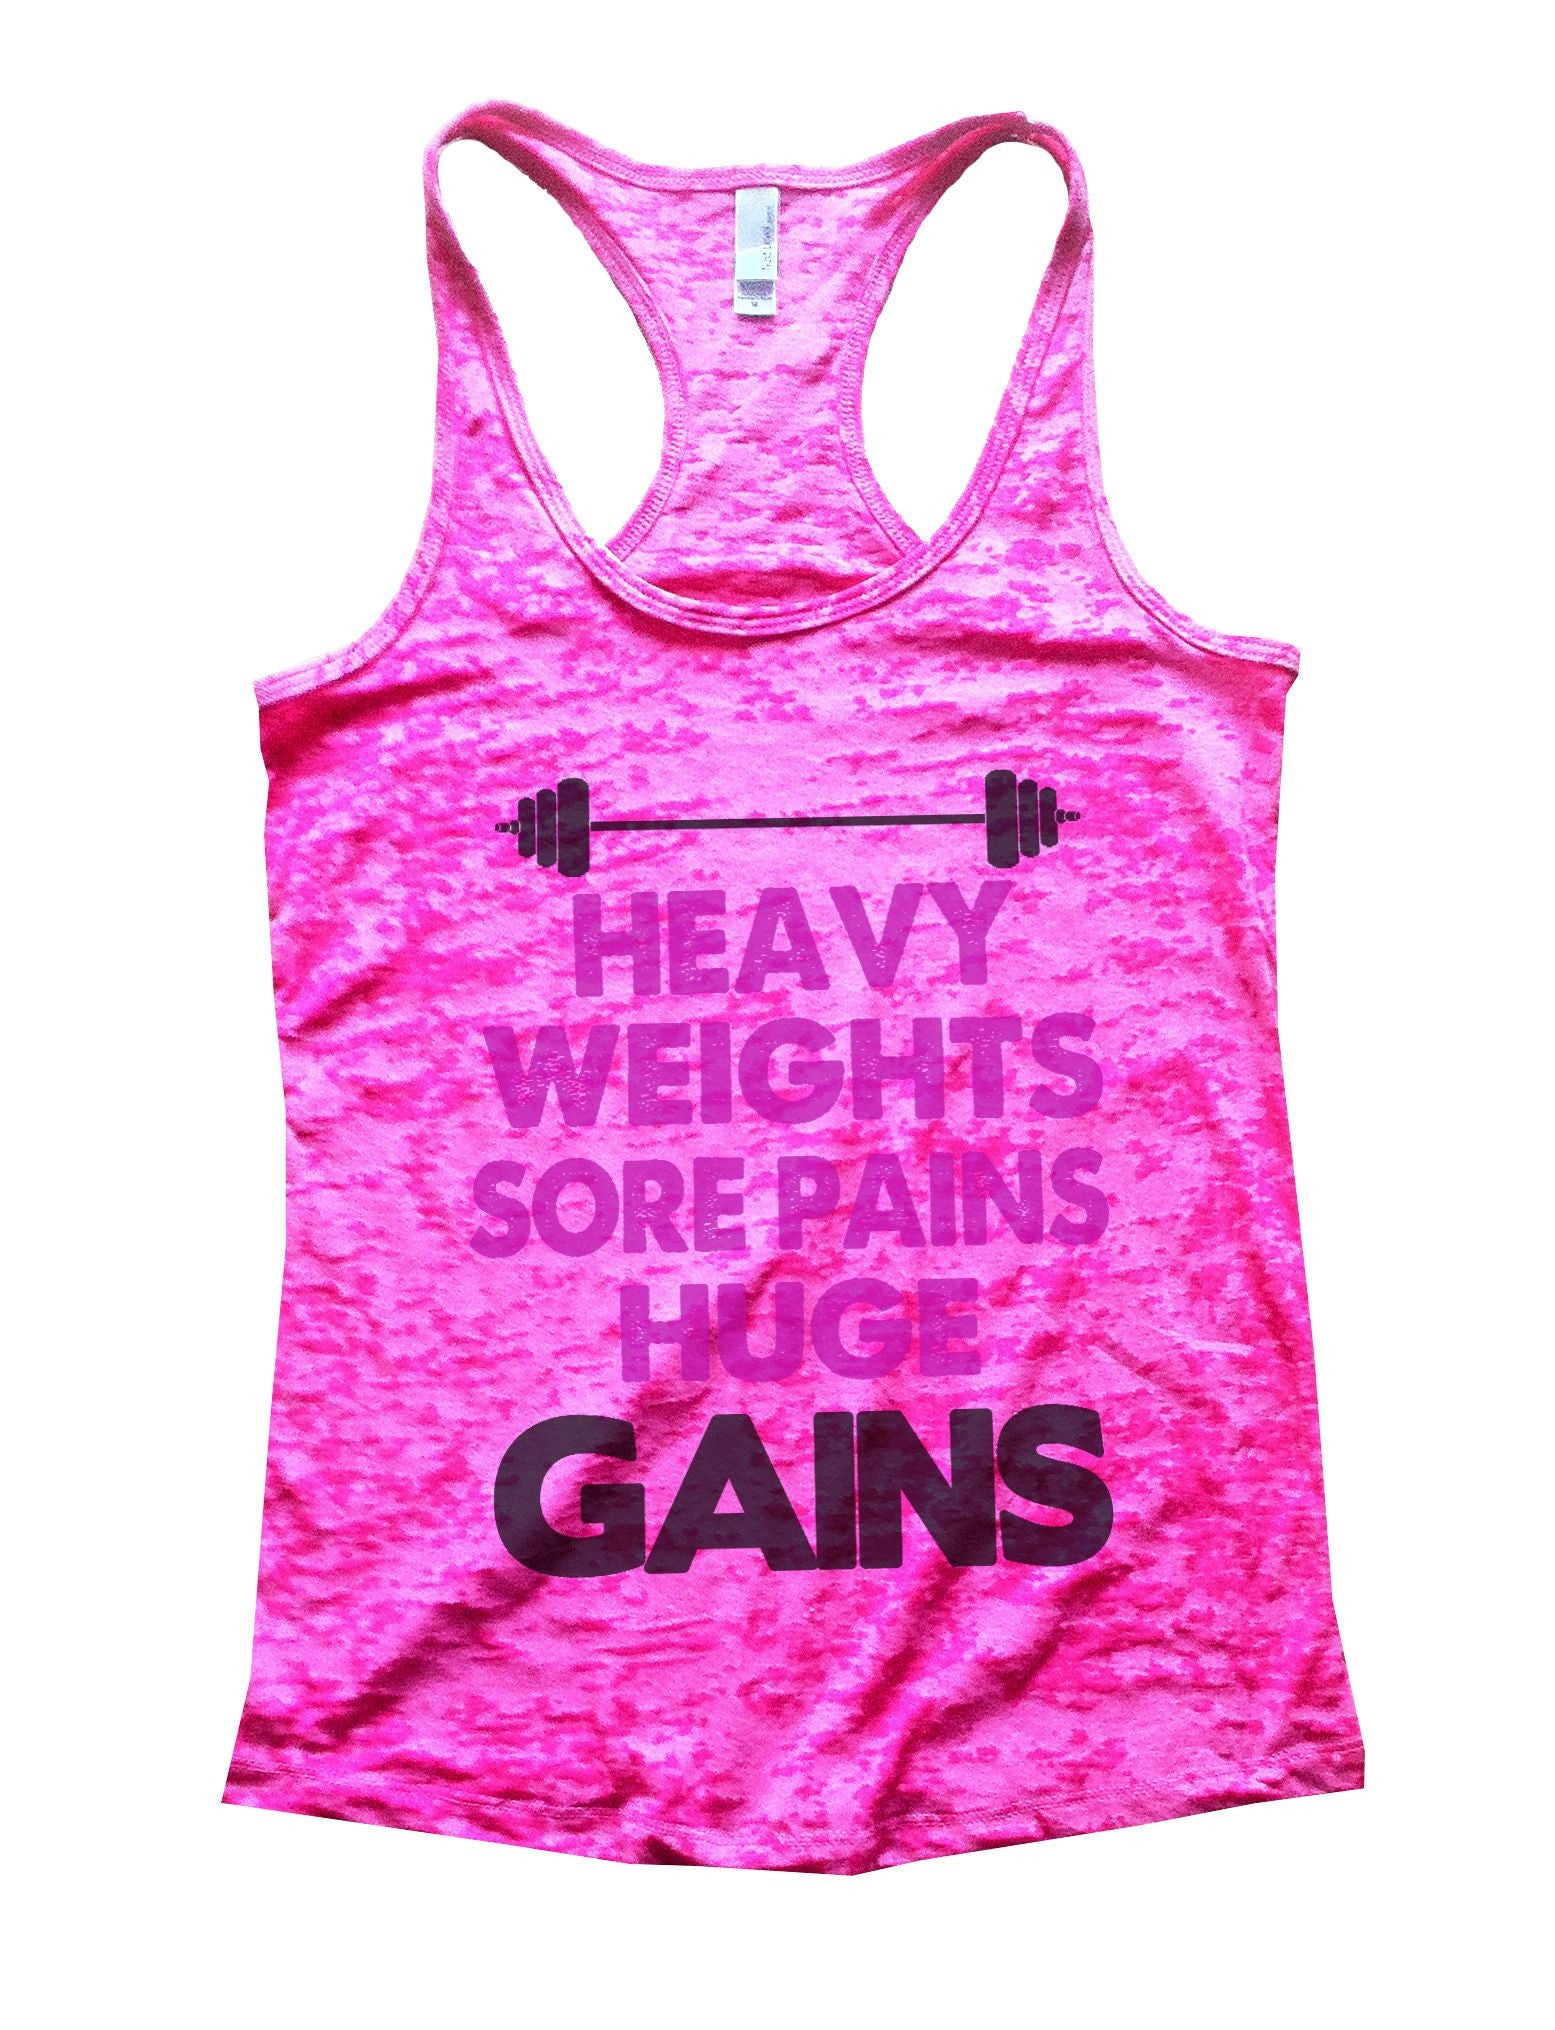 Heavy Weights Sore Pains Huge Gains Burnout Tank Top By BurnoutTankTops.com - 620 - Funny Shirts Tank Tops Burnouts and Triblends  - 2